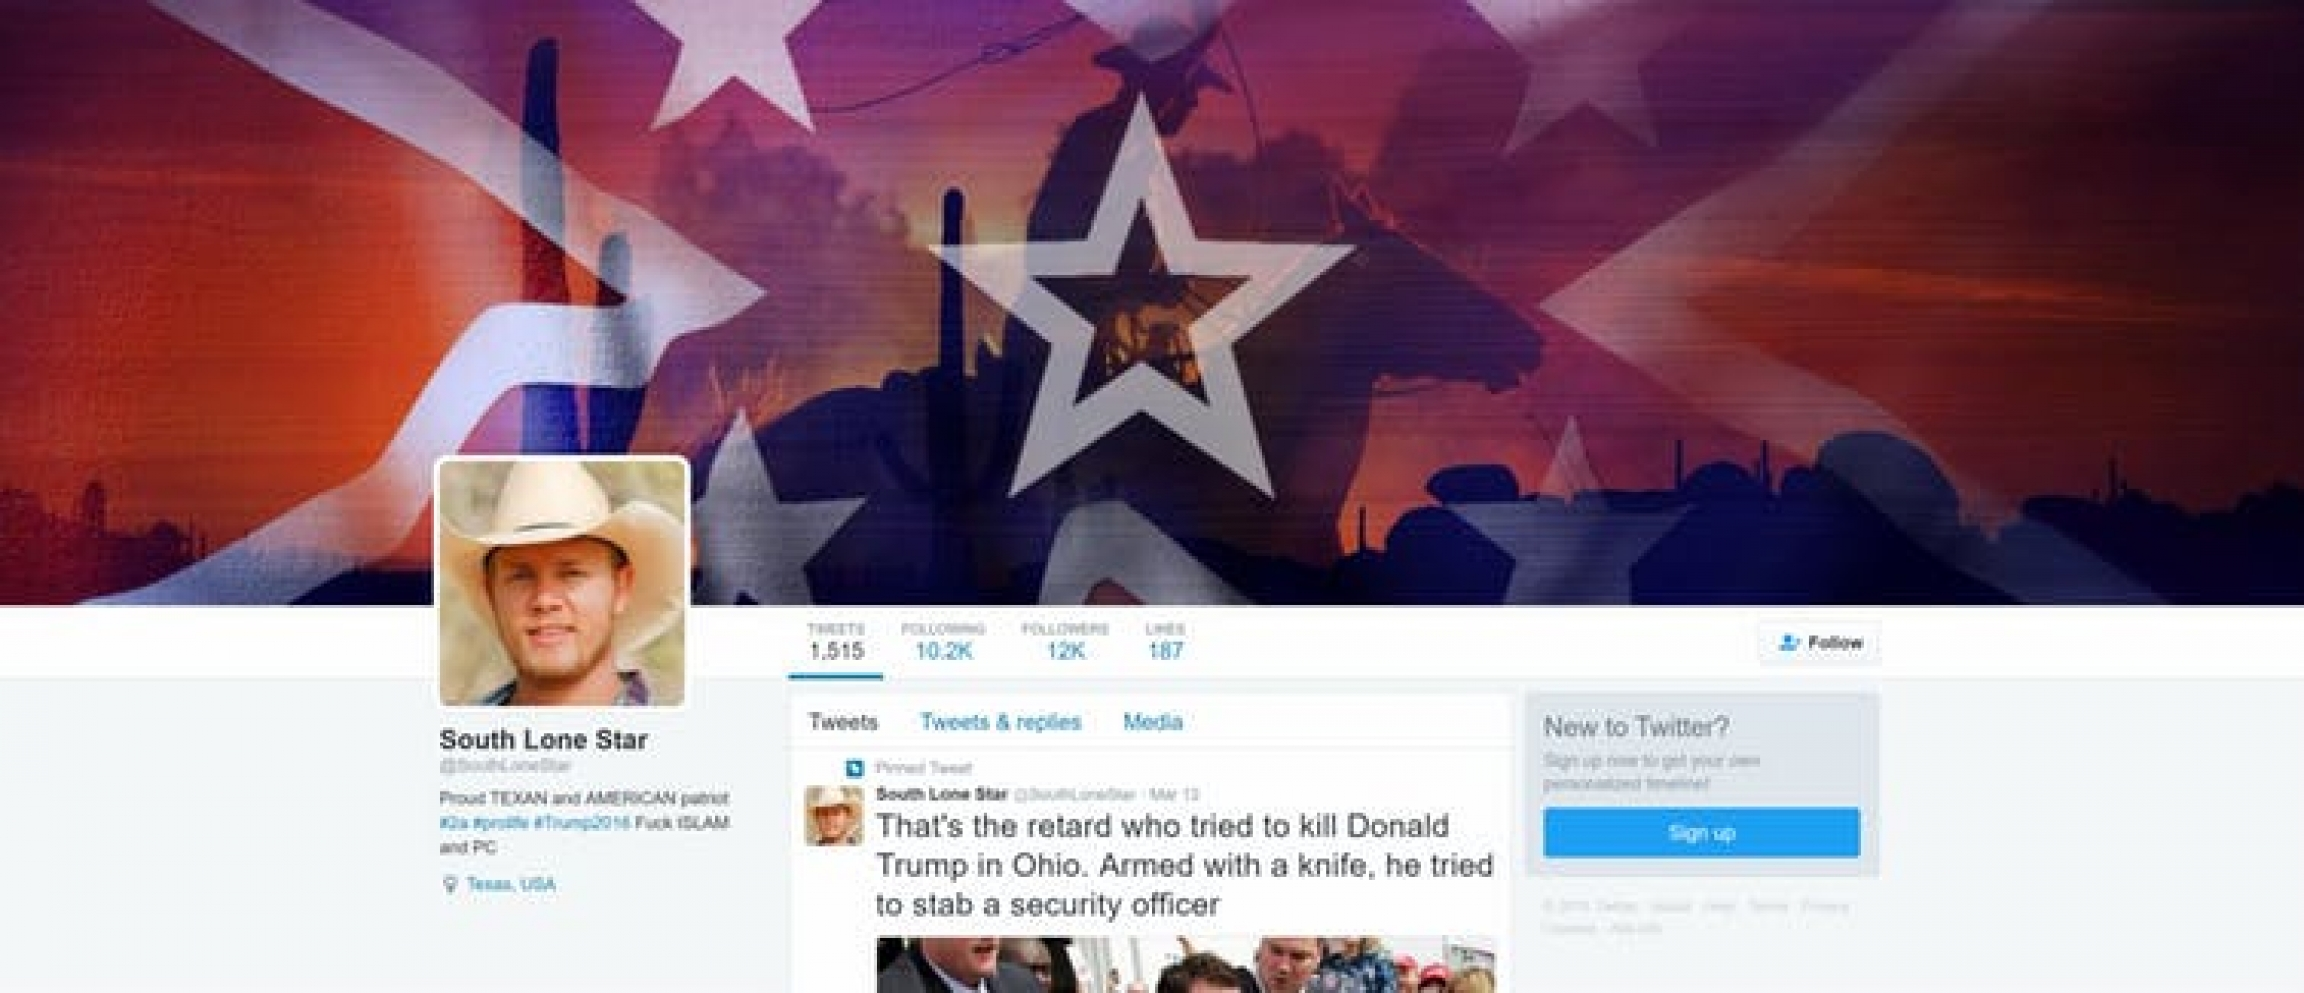 a Russian troll's twitter profile as a Texan